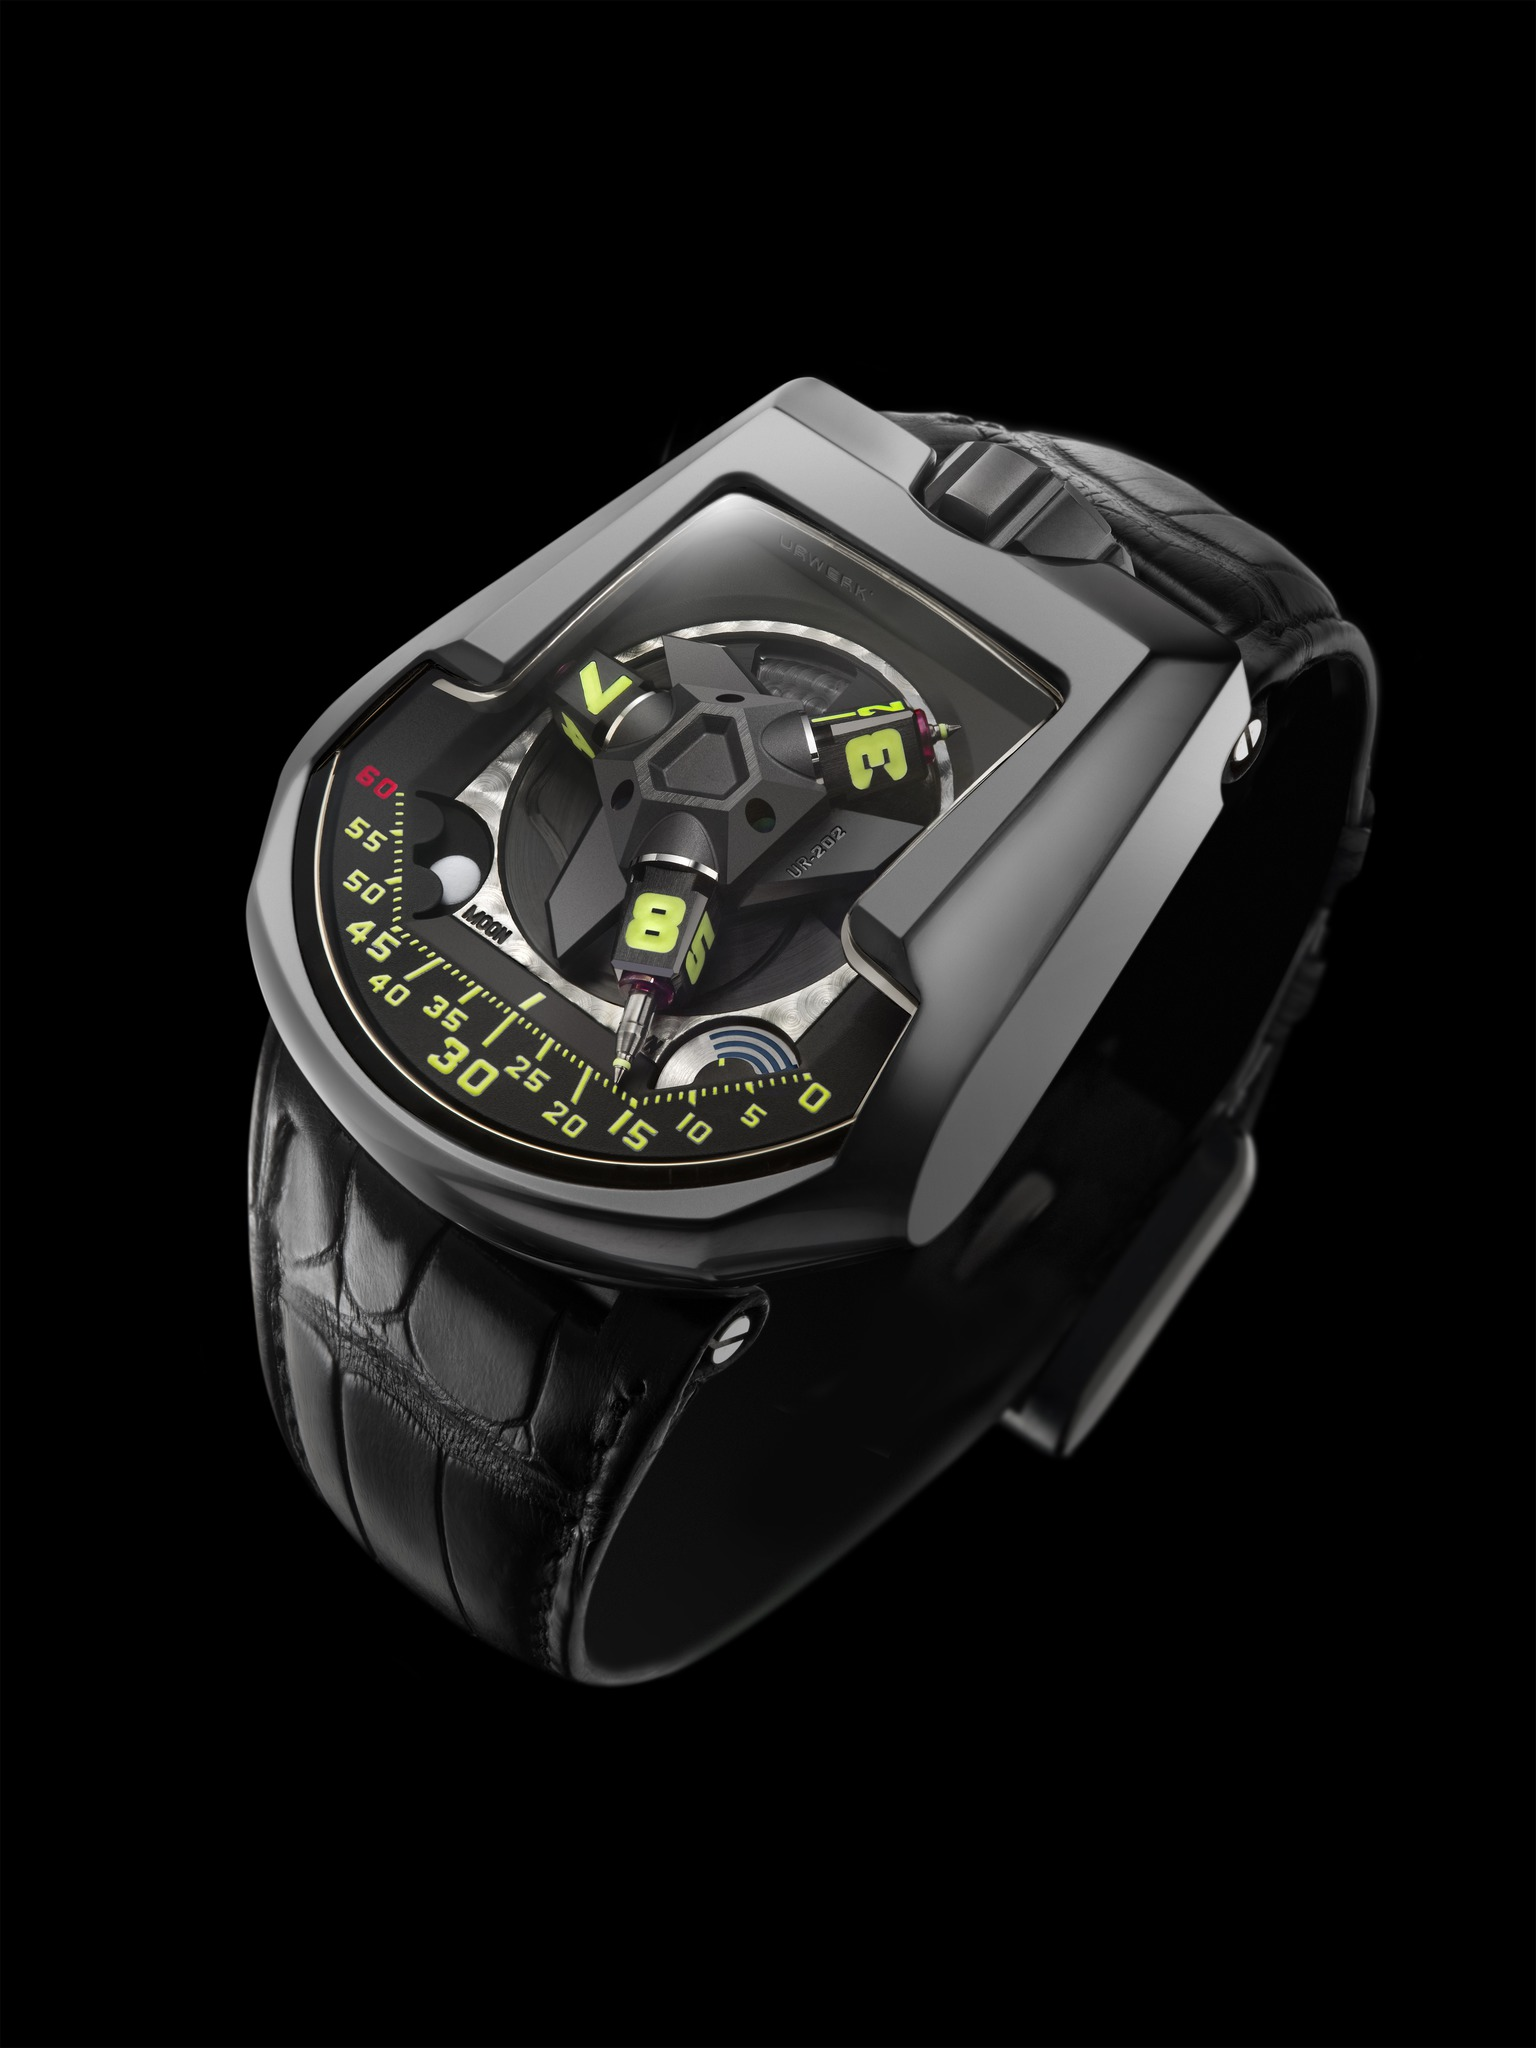 Replica Urwerk UR-202 AlTiN-Coated Steel Watch